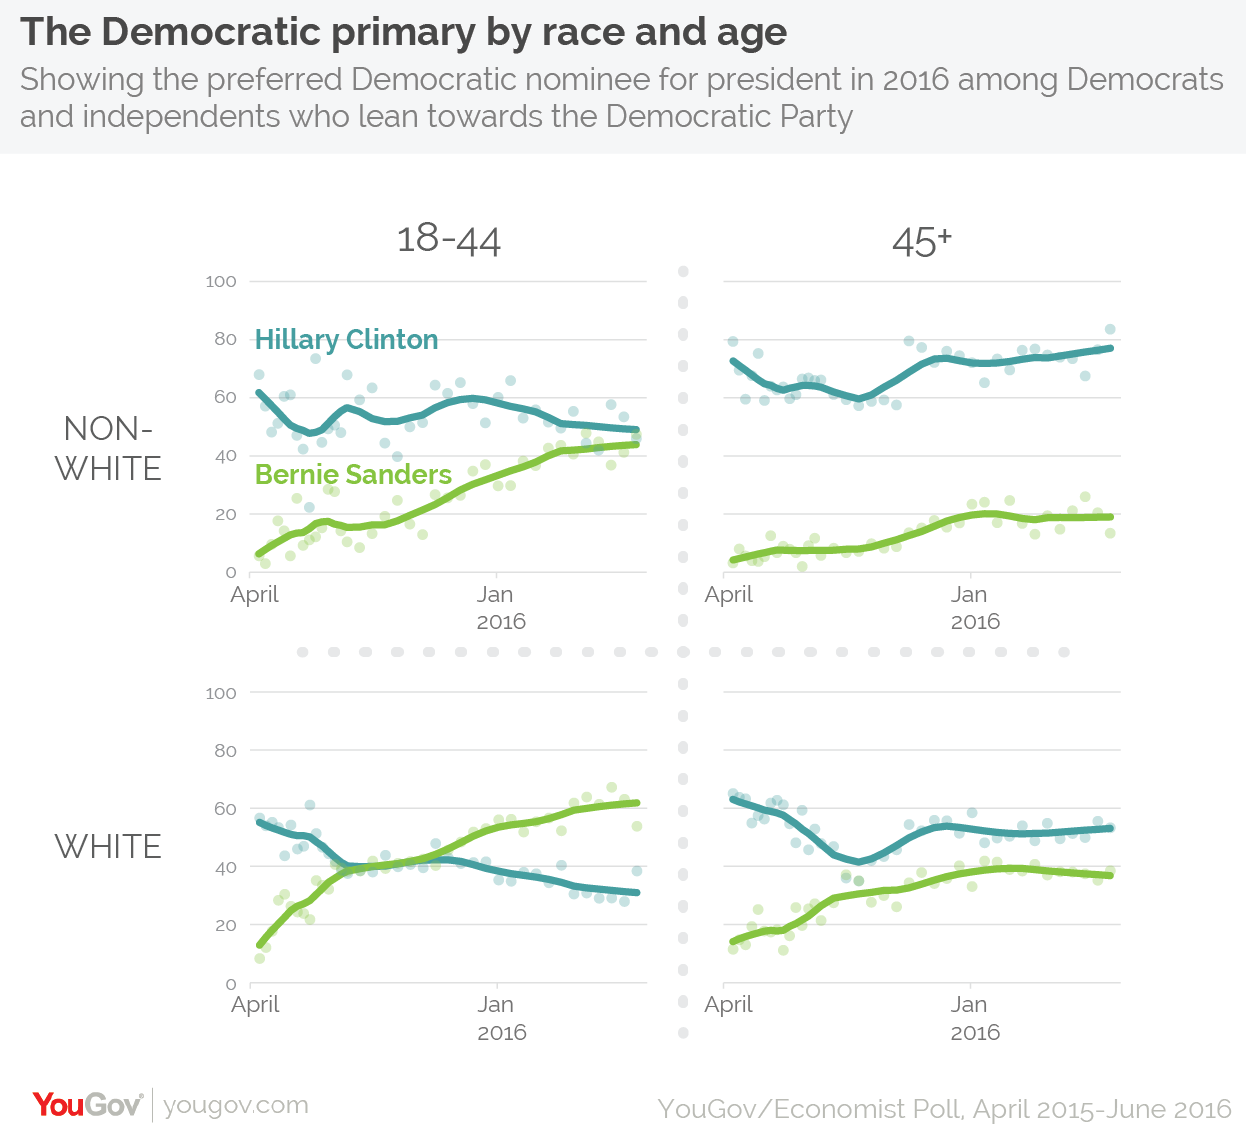 race-age-dem-primary4-01.png